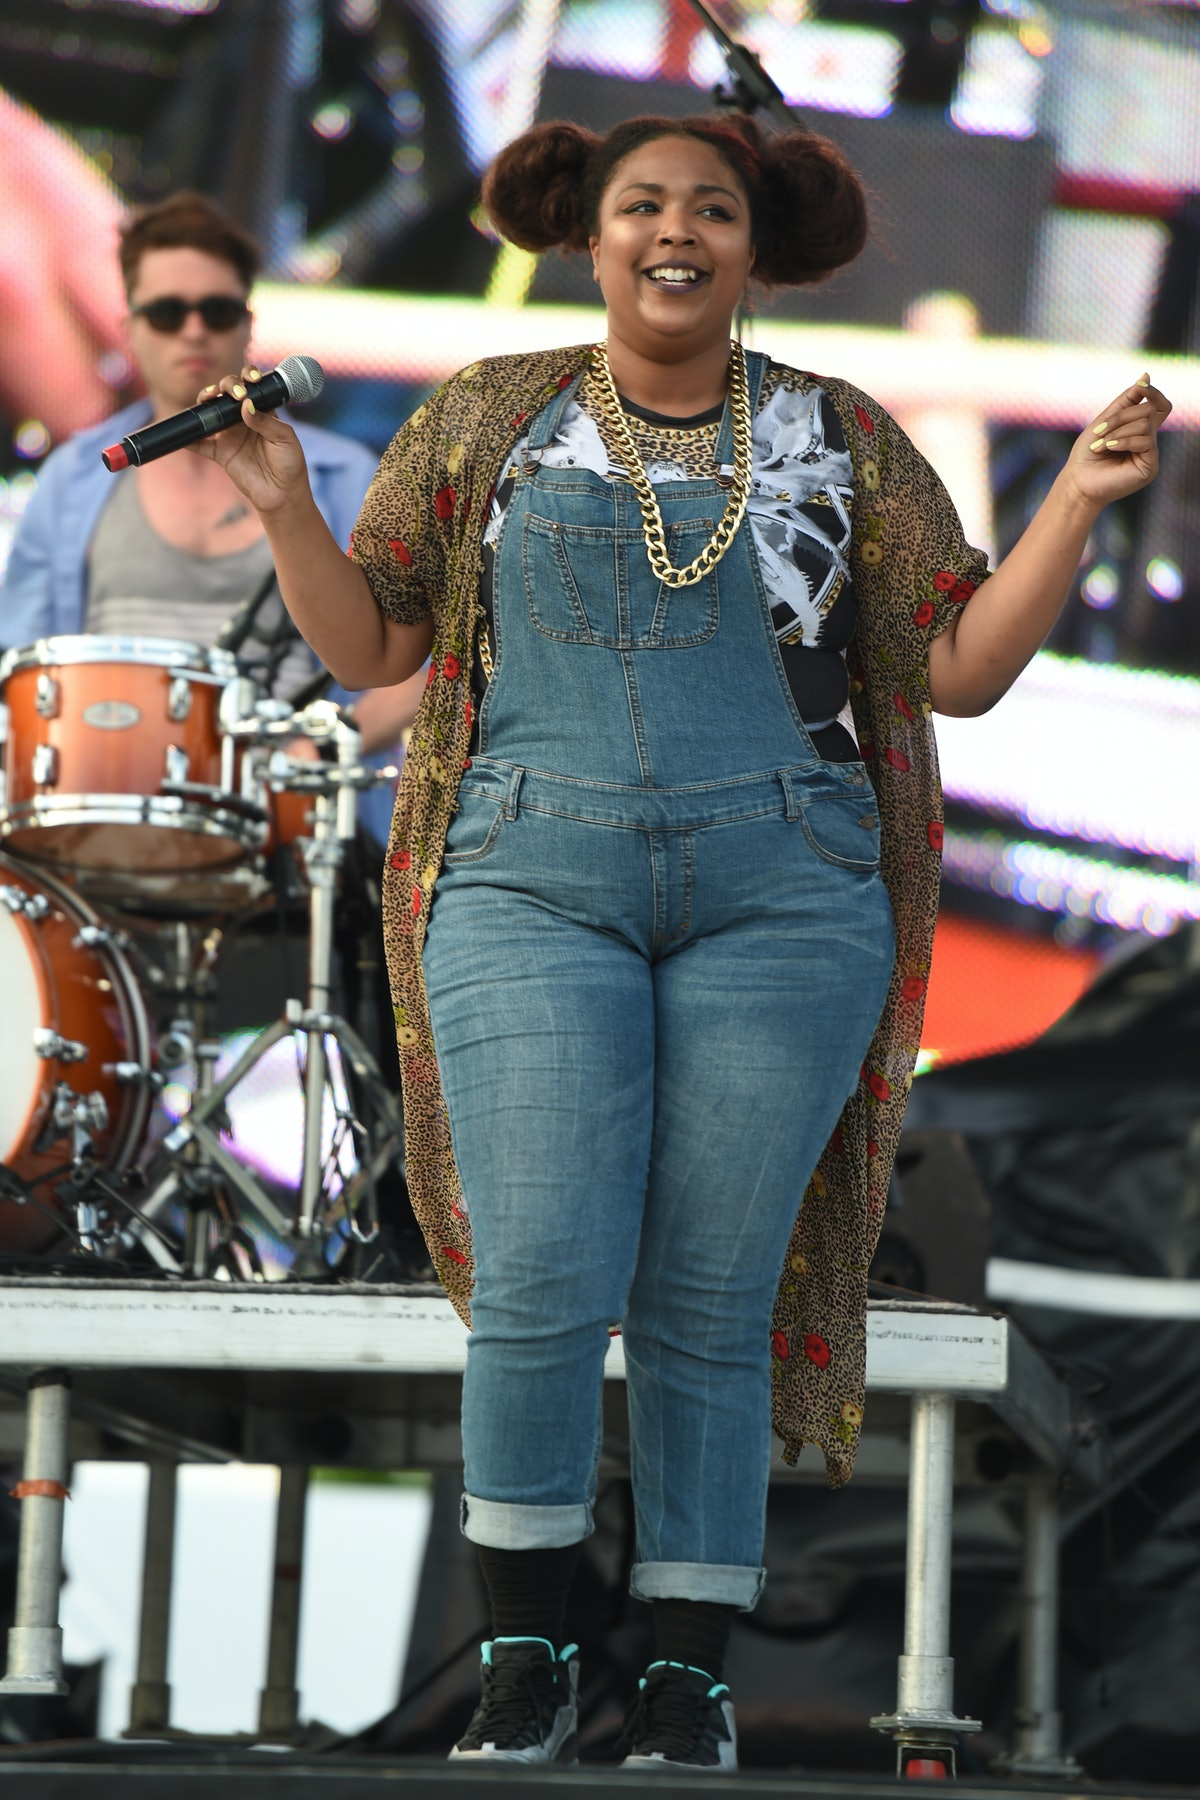 Lizzo on stage.